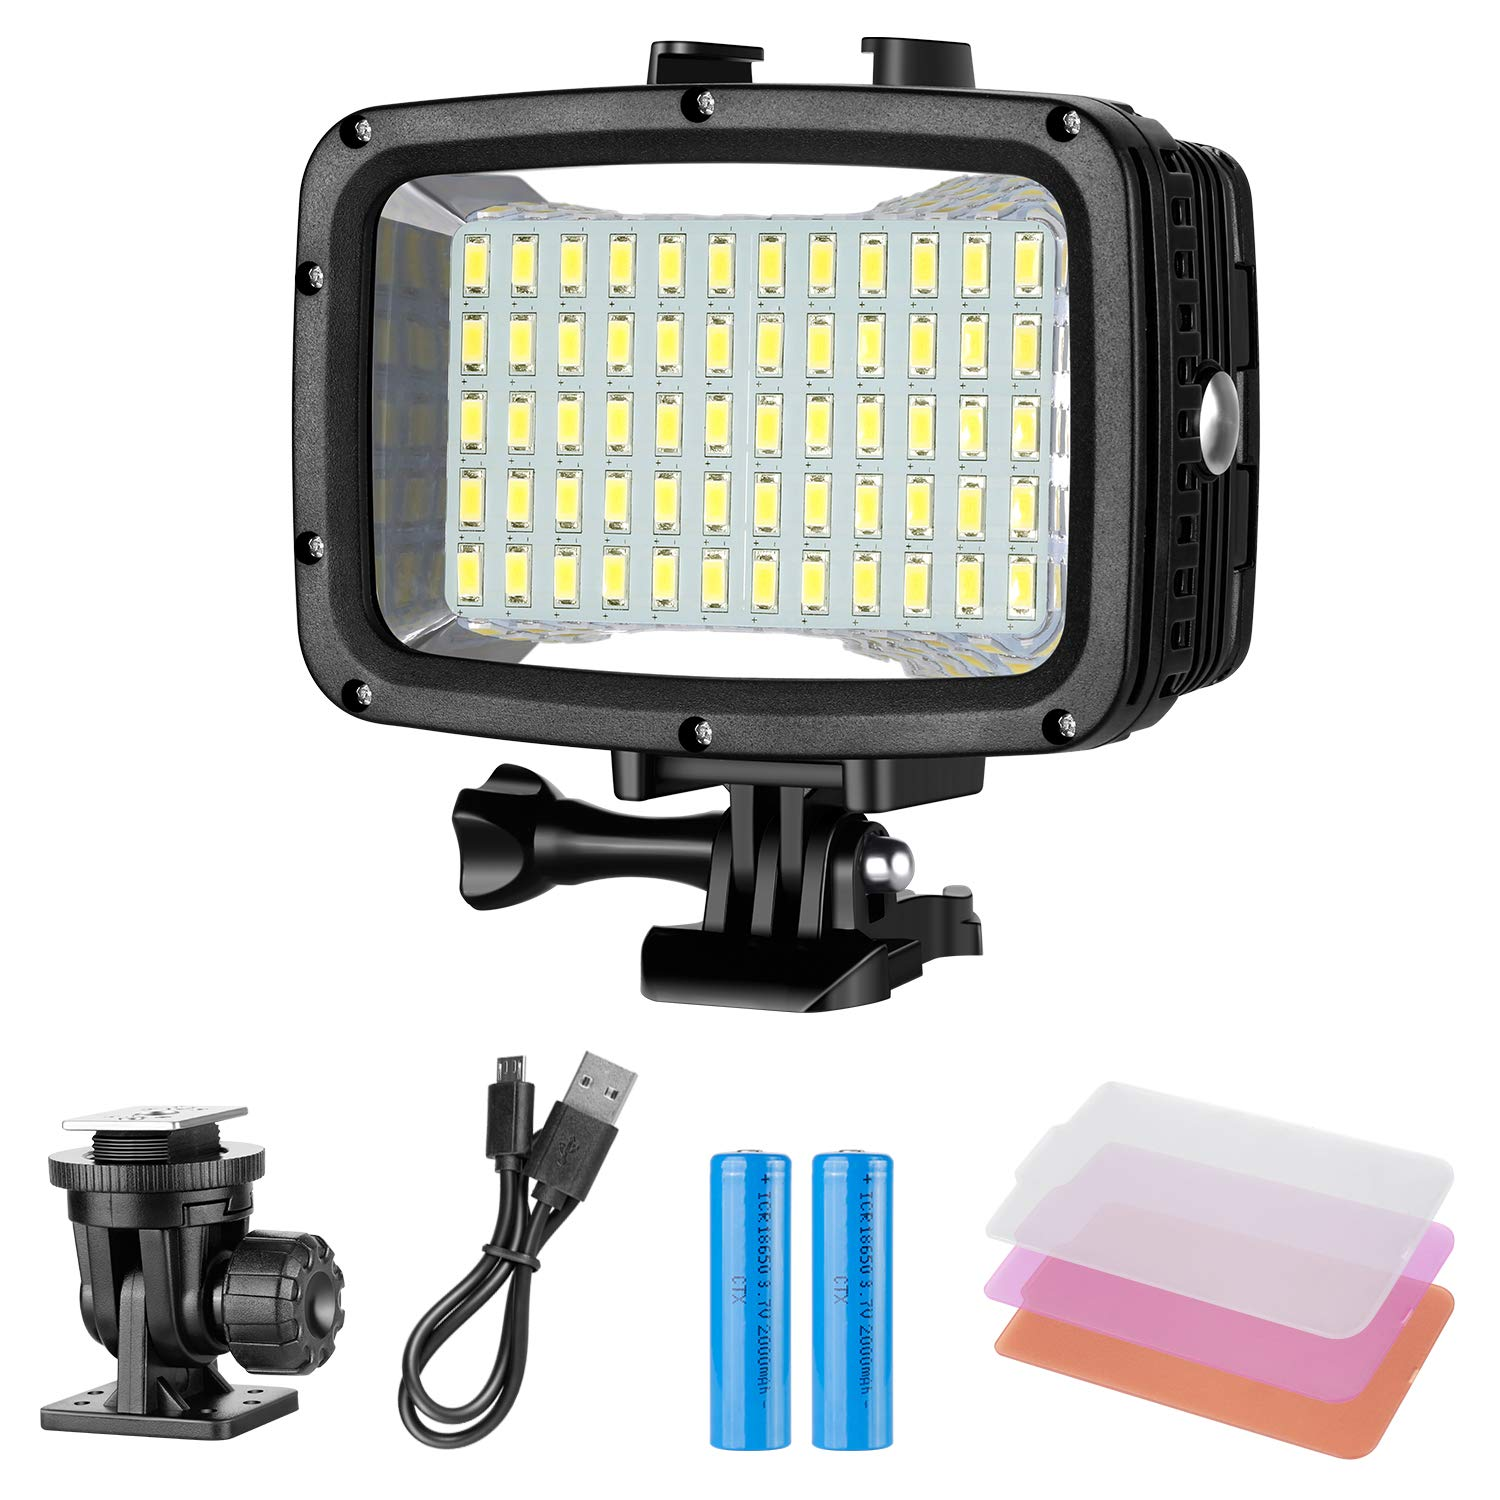 Neewer Underwater Lights Dive Light 60 LED Dimmable Waterproof LED Video Light 131feet/40m for GoPro Hero 6 5 4 Hero Session Canon Nikon Pentax and Other Action and DSLR Cameras (Battery Included) by Neewer